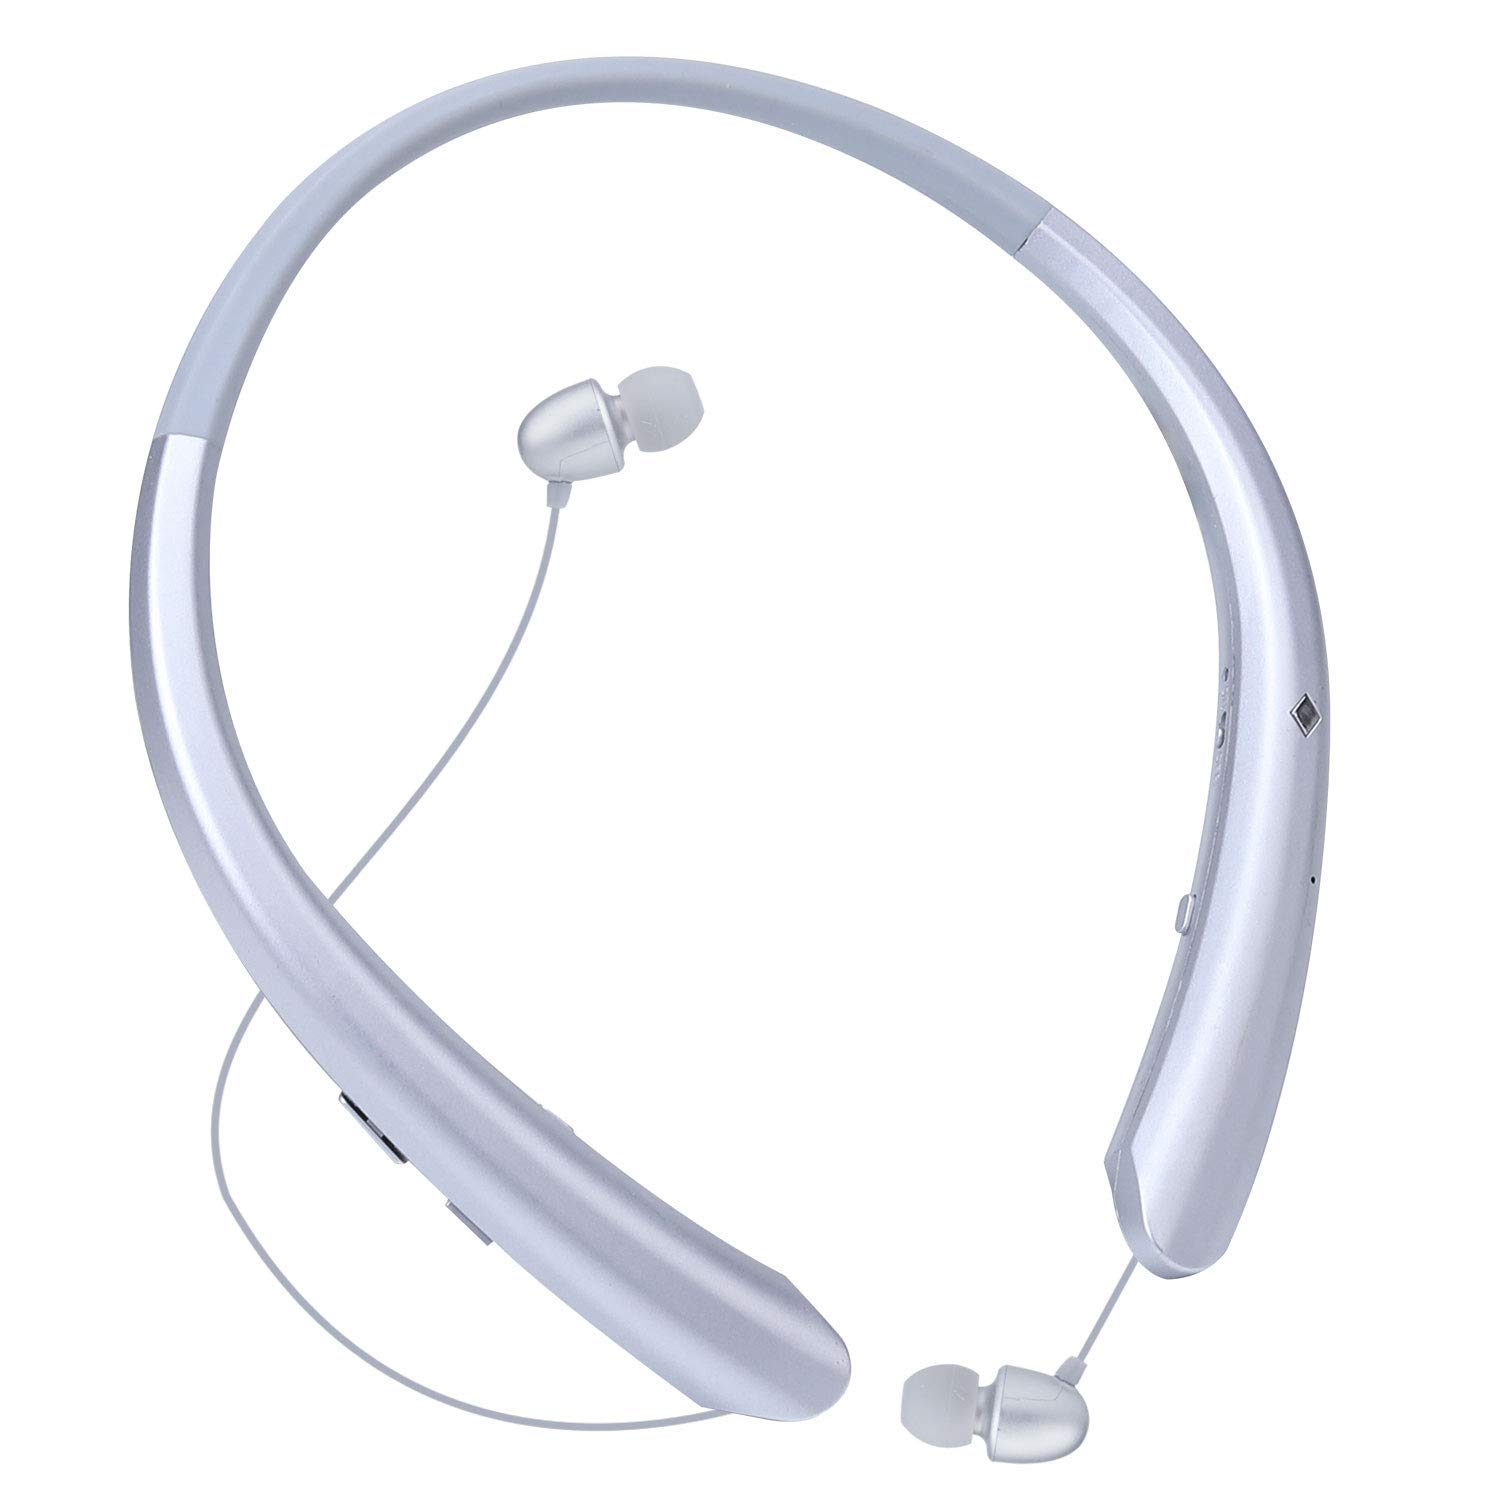 Bluetooth Retractable Headphones, Wireless Earbuds Neckband Headset HD Stereo Earphones with Mic (Silver)